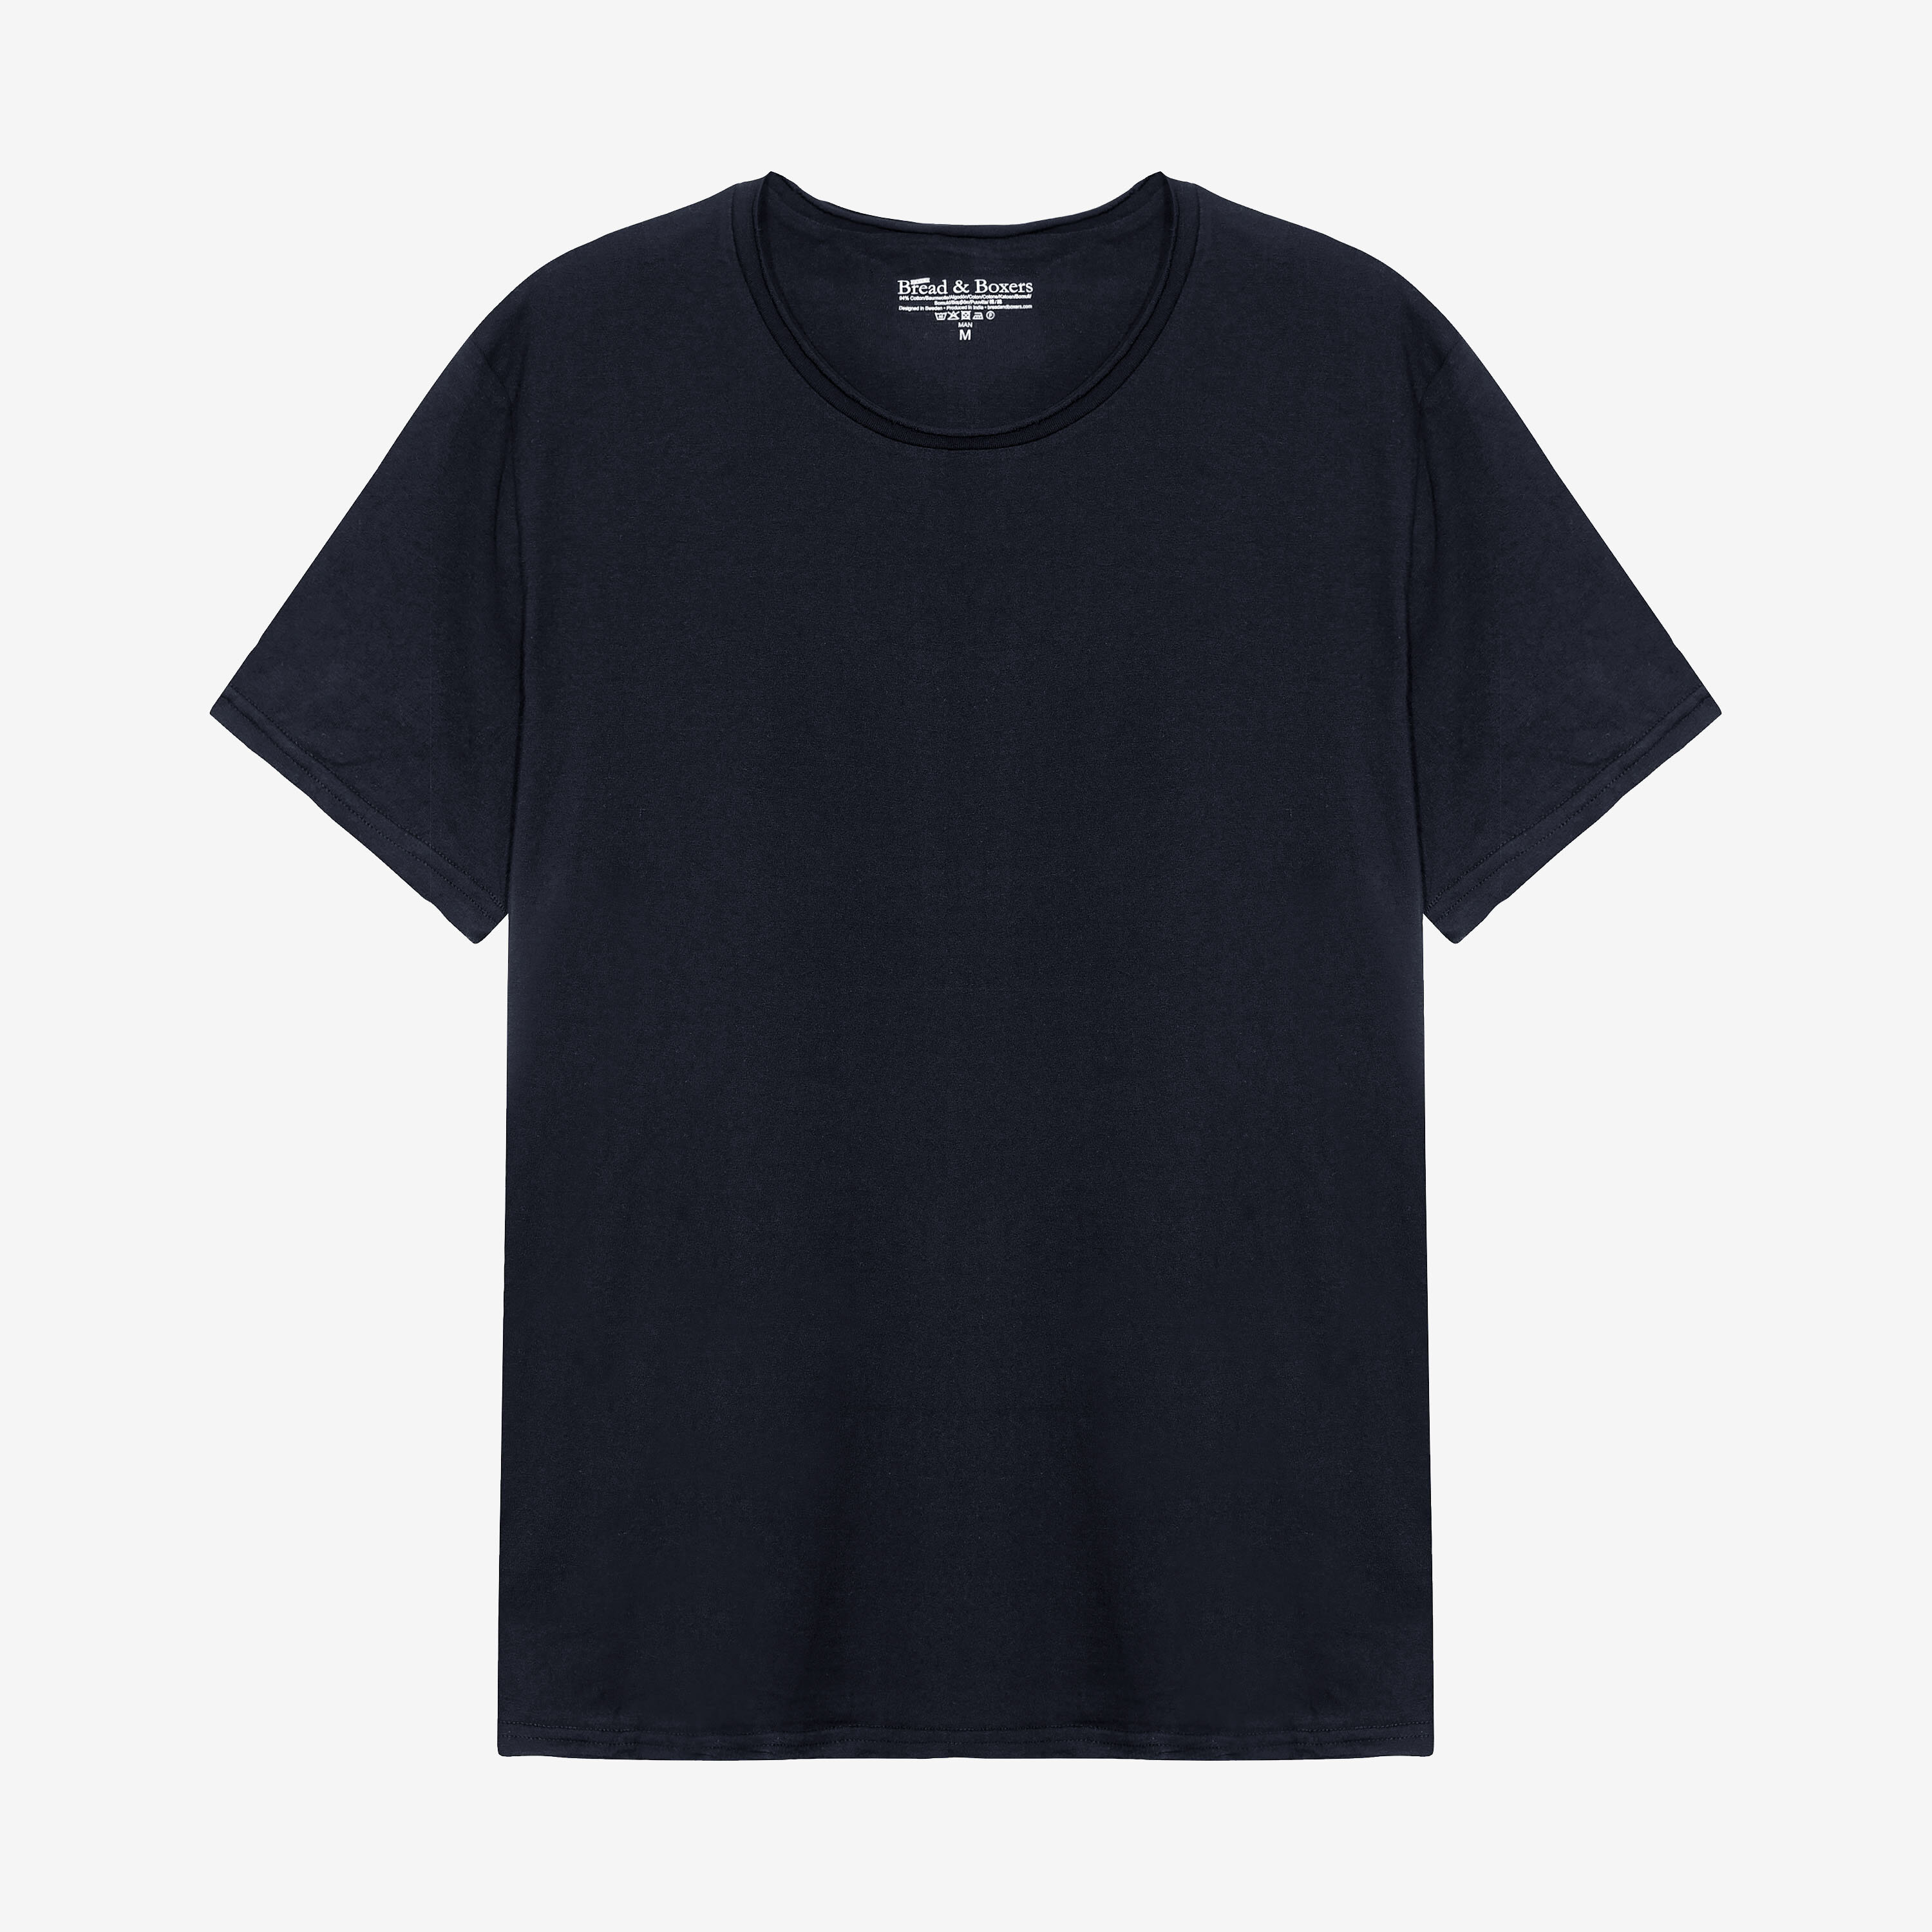 103204_Man_Crew-Neck_relaxed_dark-navy_CO